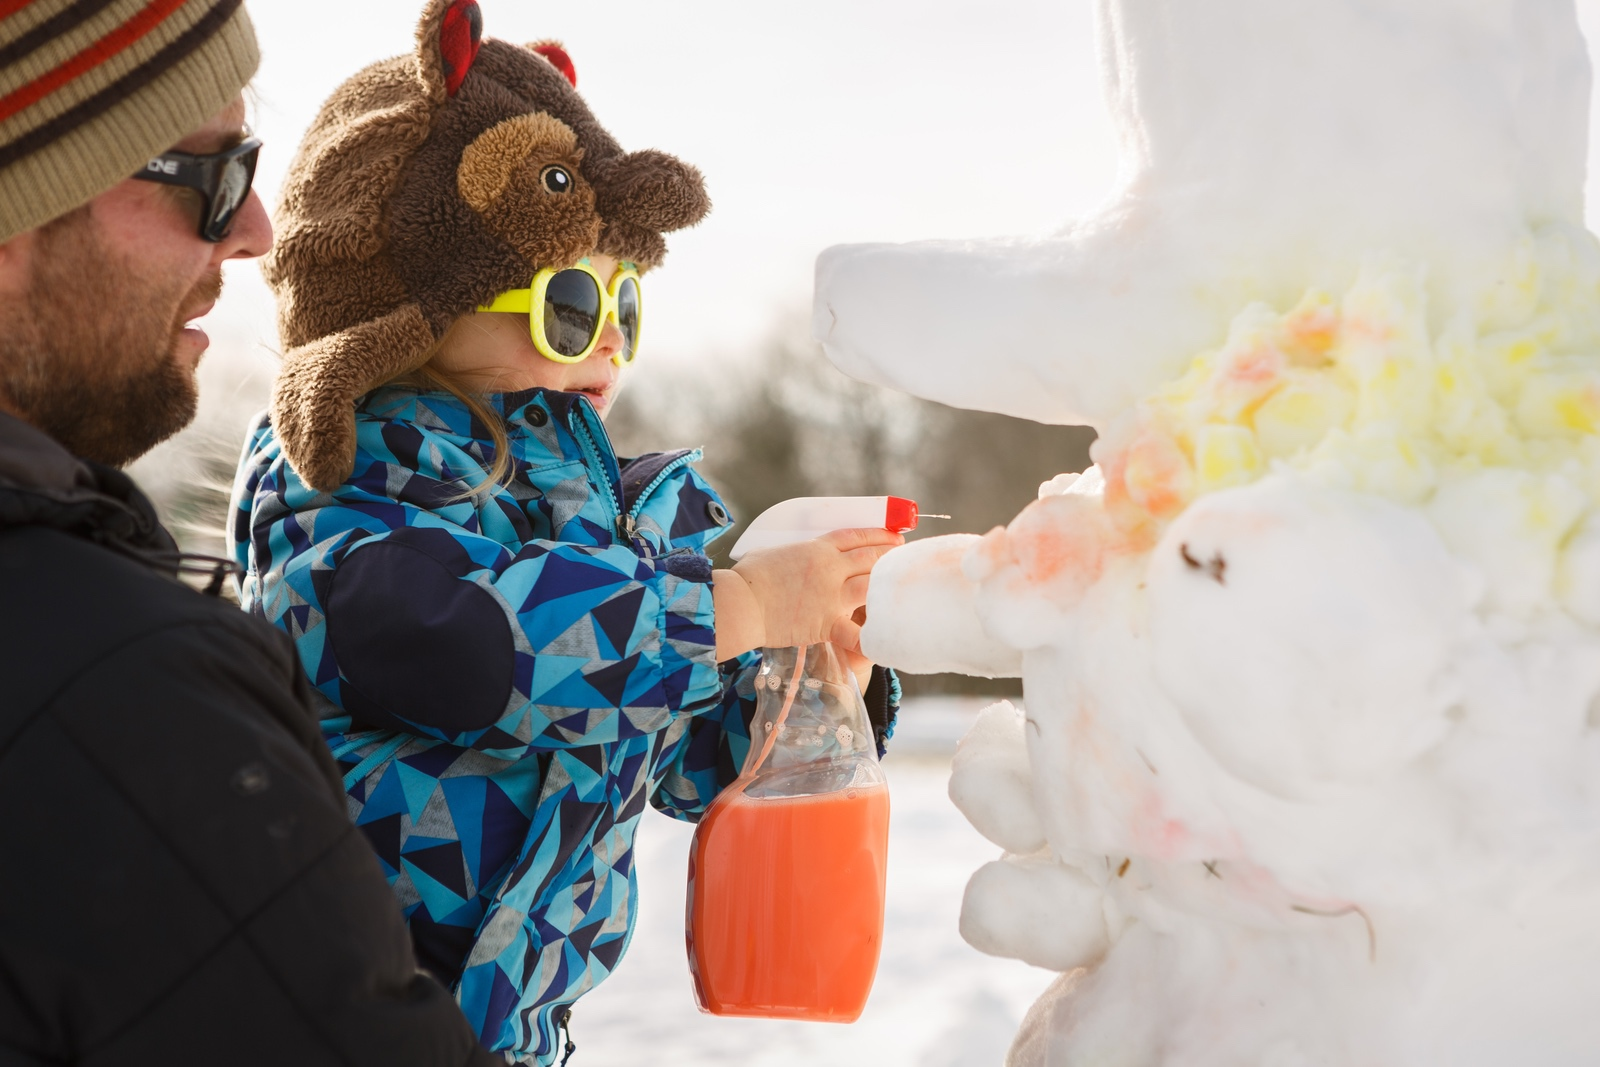 12 Ideas for Outdoor Winter Fun WinterKids Misc405 welcome to winter festival 2018 payson park outdoor activites maine event photographer whitney j fox 2069